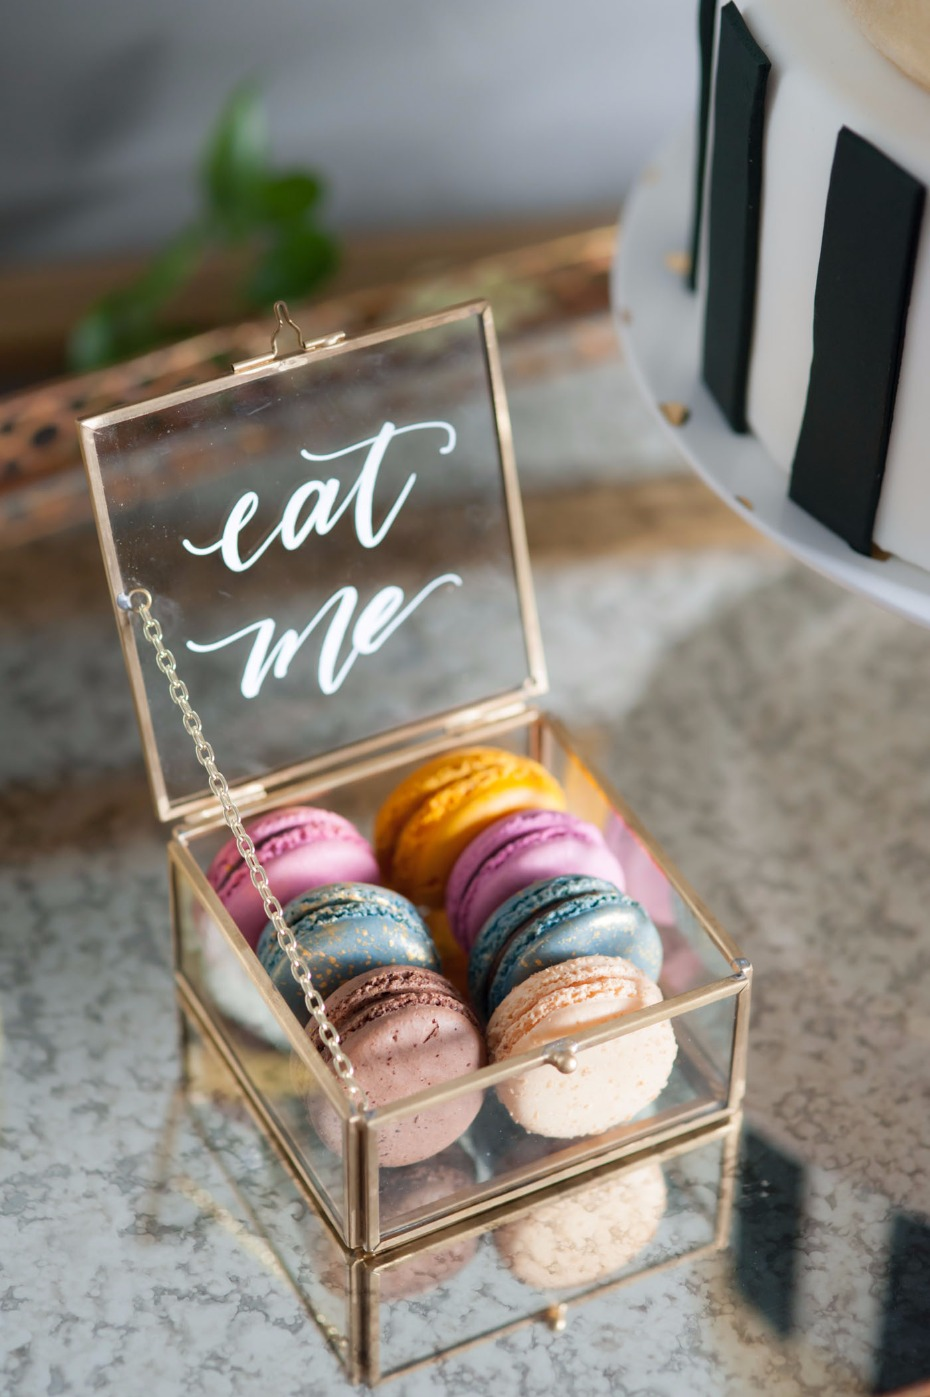 """Eat me"" box of macarons"